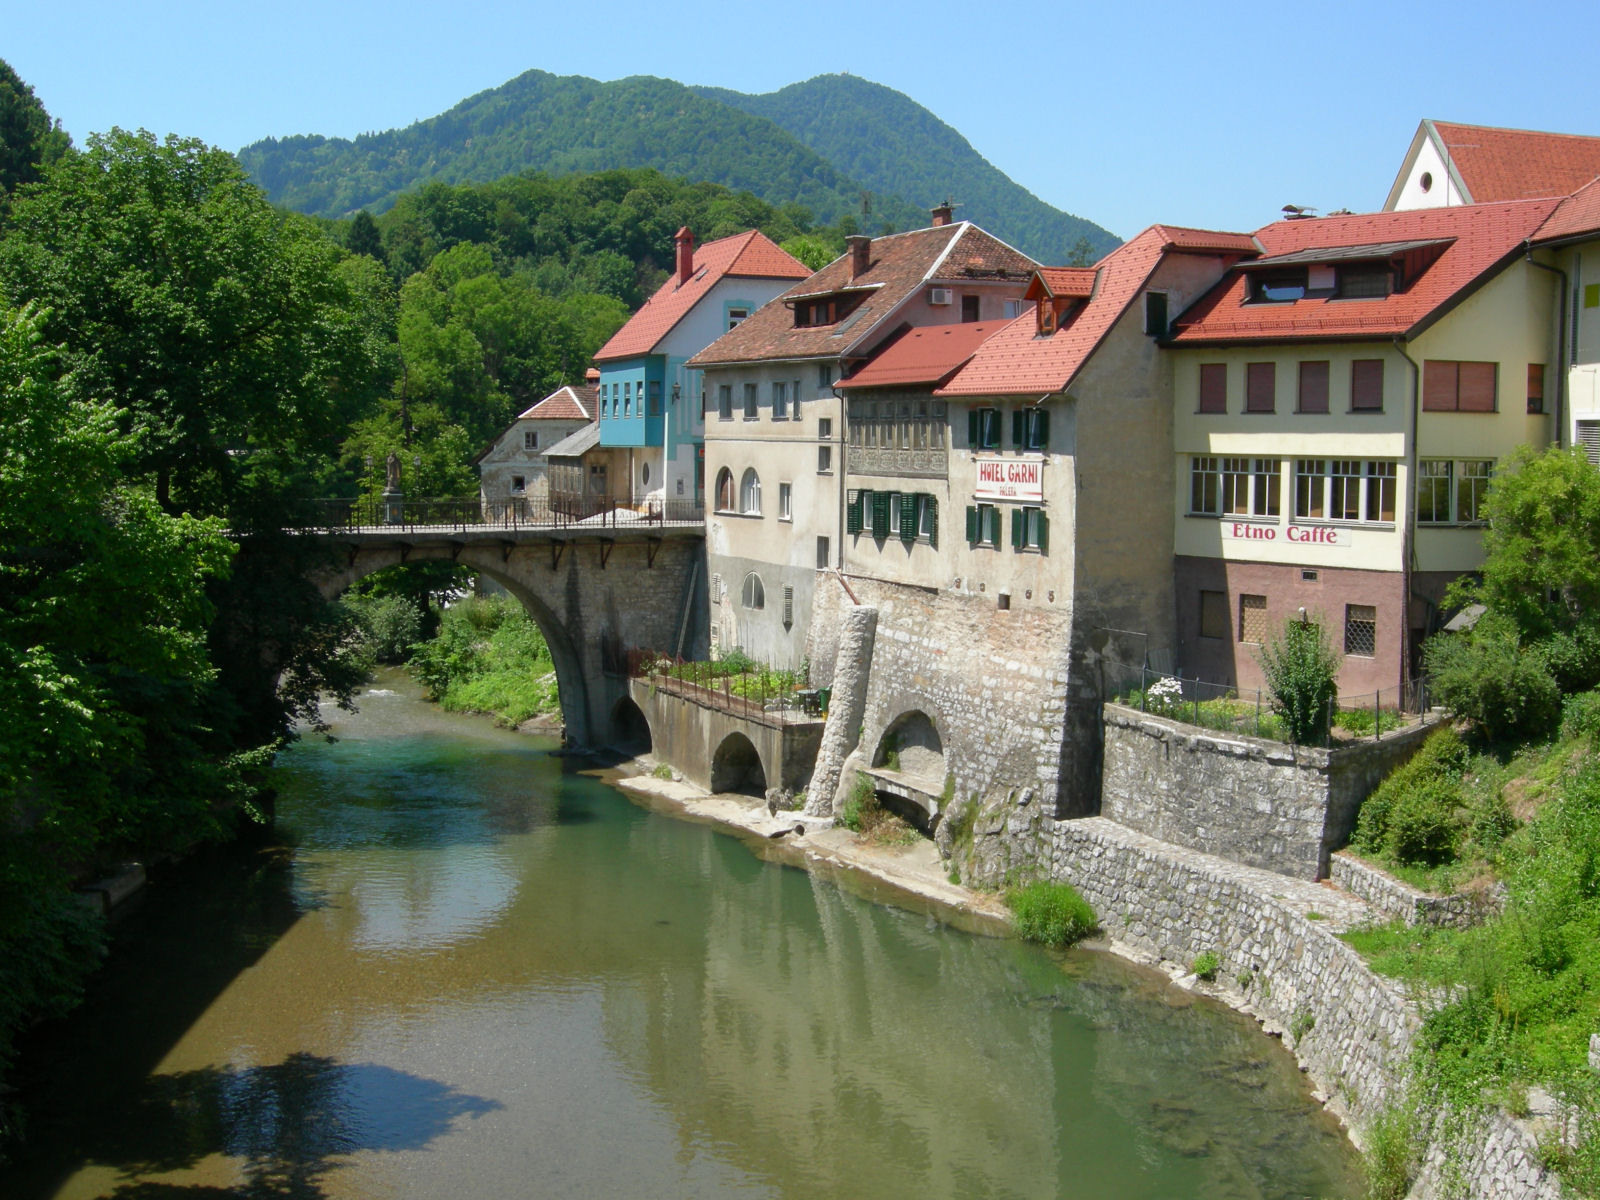 Capuchin bridge across the Sora river in Skofja Loka, Gorenjska, Slovenia